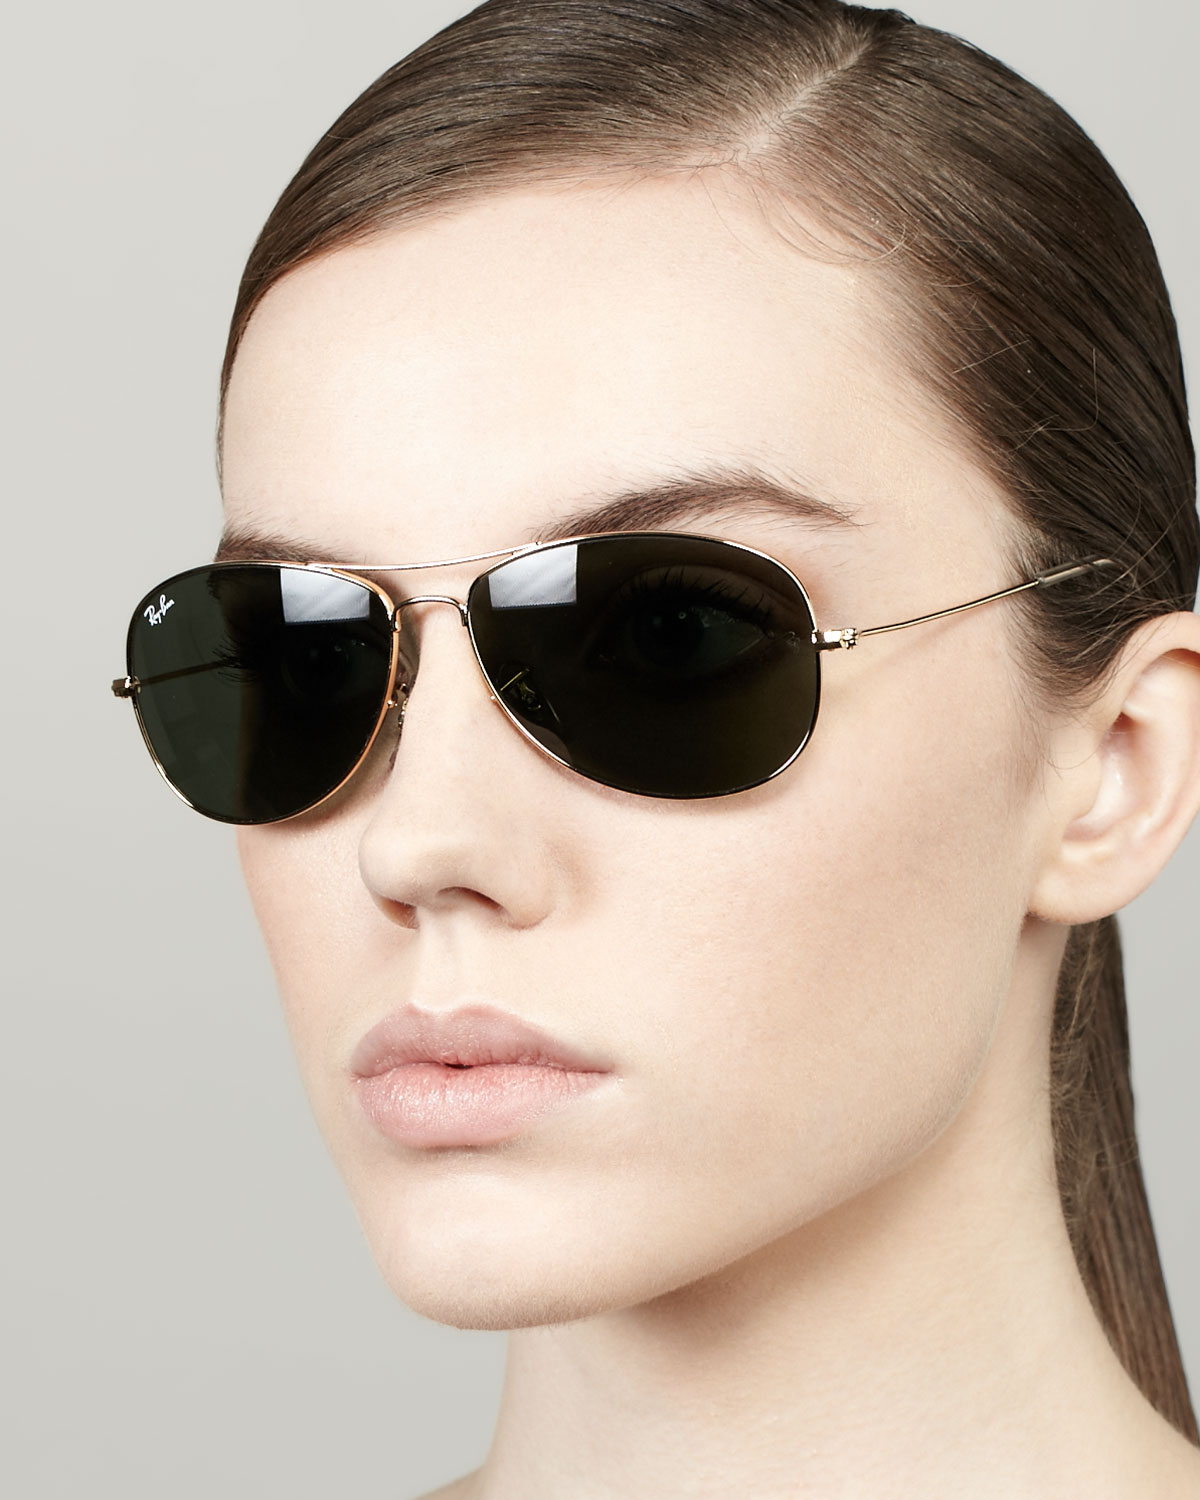 Sunglasses High Street  ray ban high street aviator sunglasses in metallic lyst